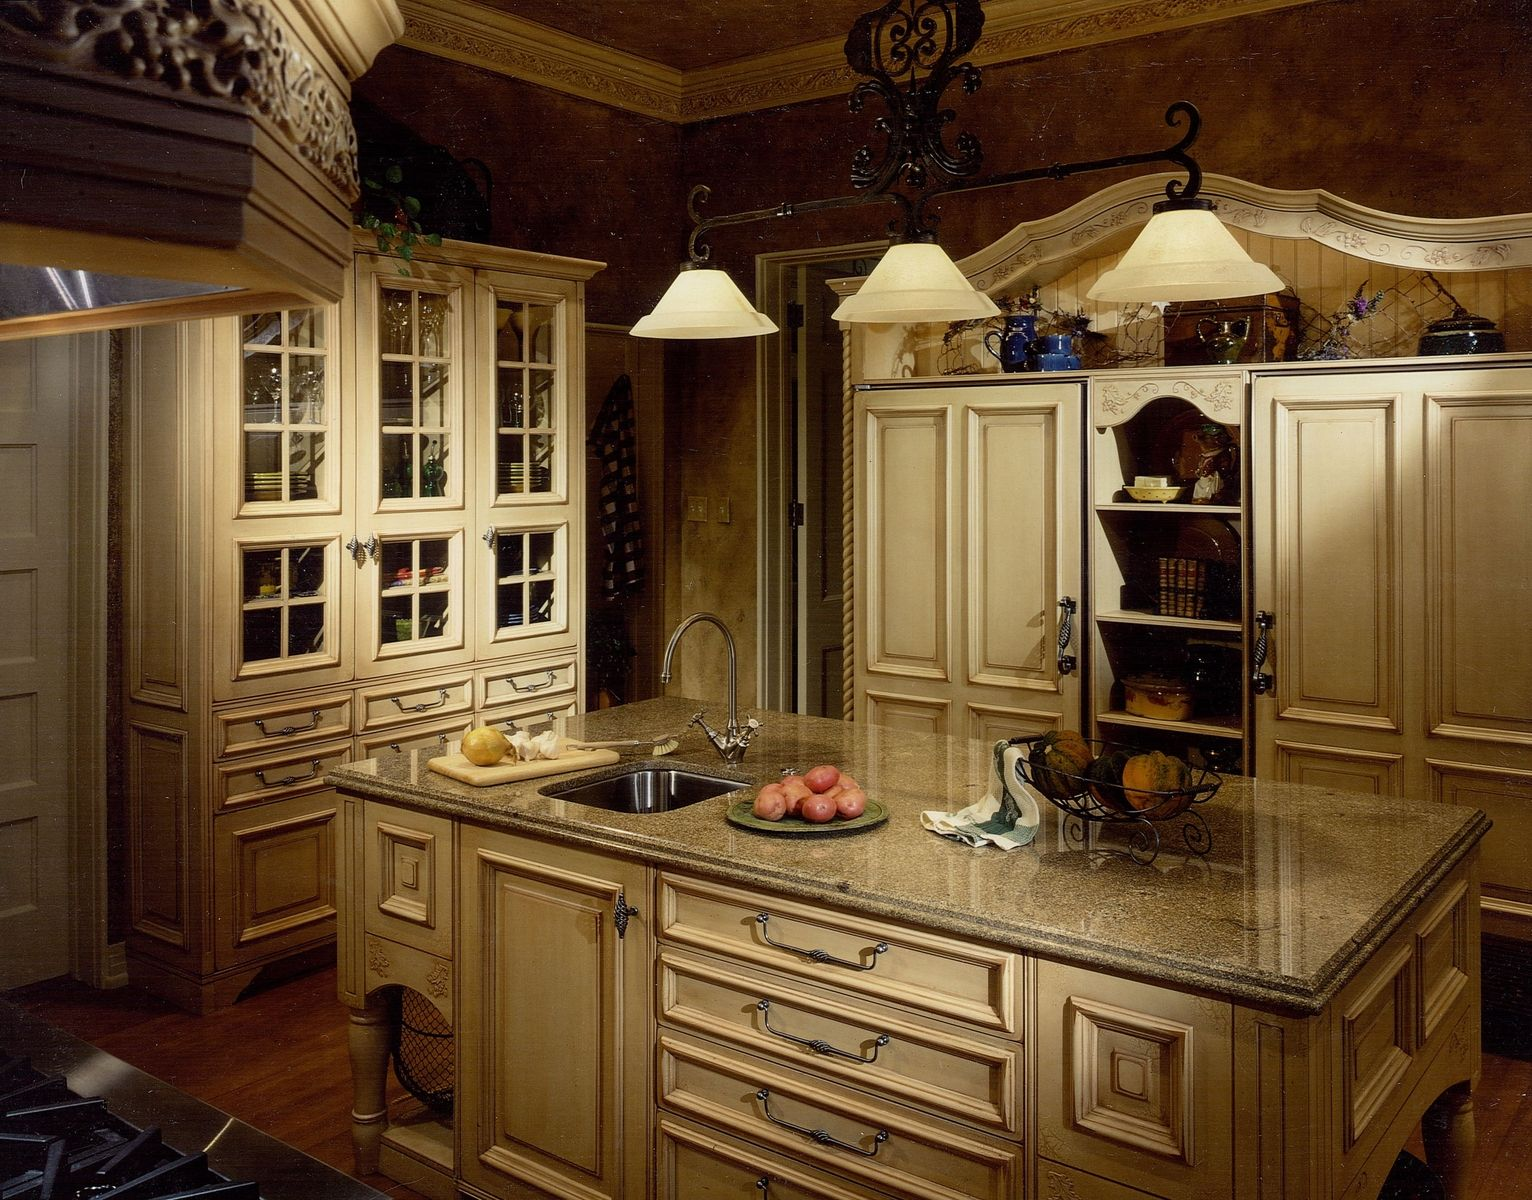 French country kitchen cabinets design ideas Design for cabinet for kitchen